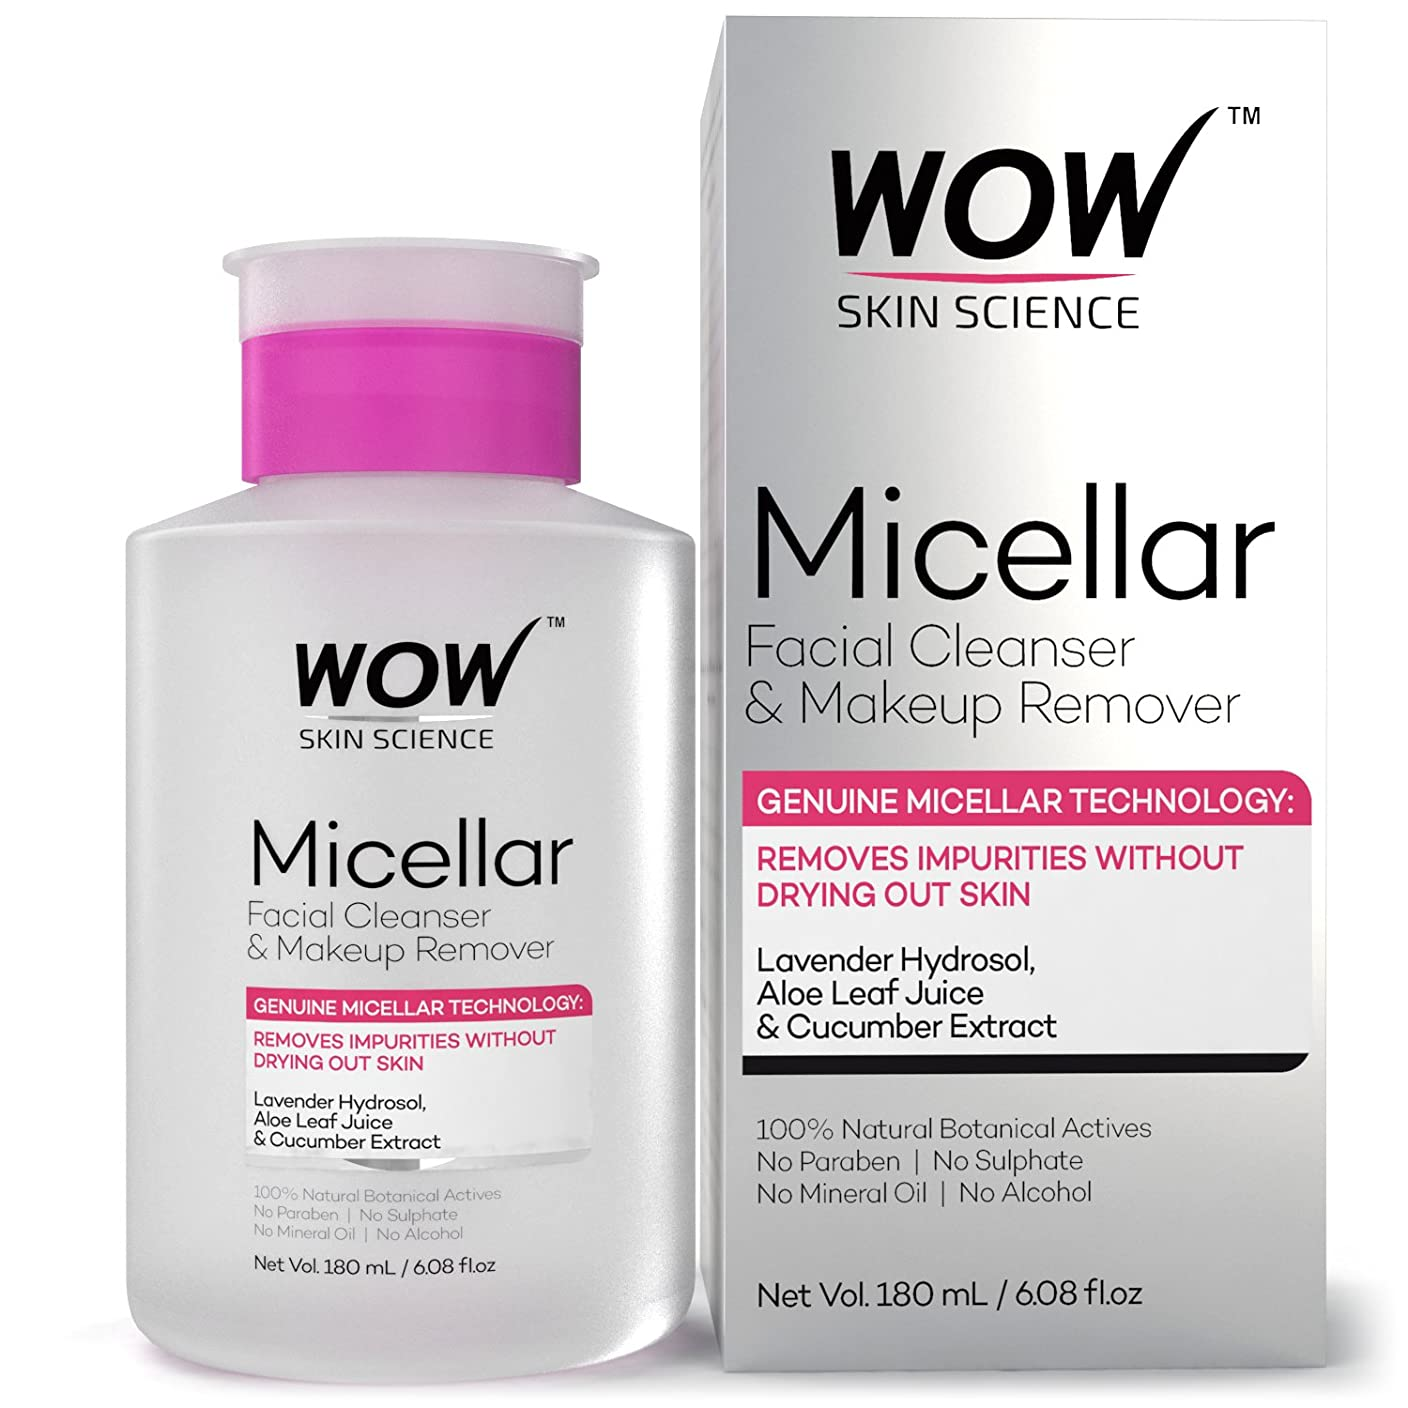 癒すくちばし裁量WOW Micellar Facial Cleanser & Make Up Remover No Parabens, Sulphates, Mineral Oil, Alcohol & Synthetic Fragrance Water, 180mL